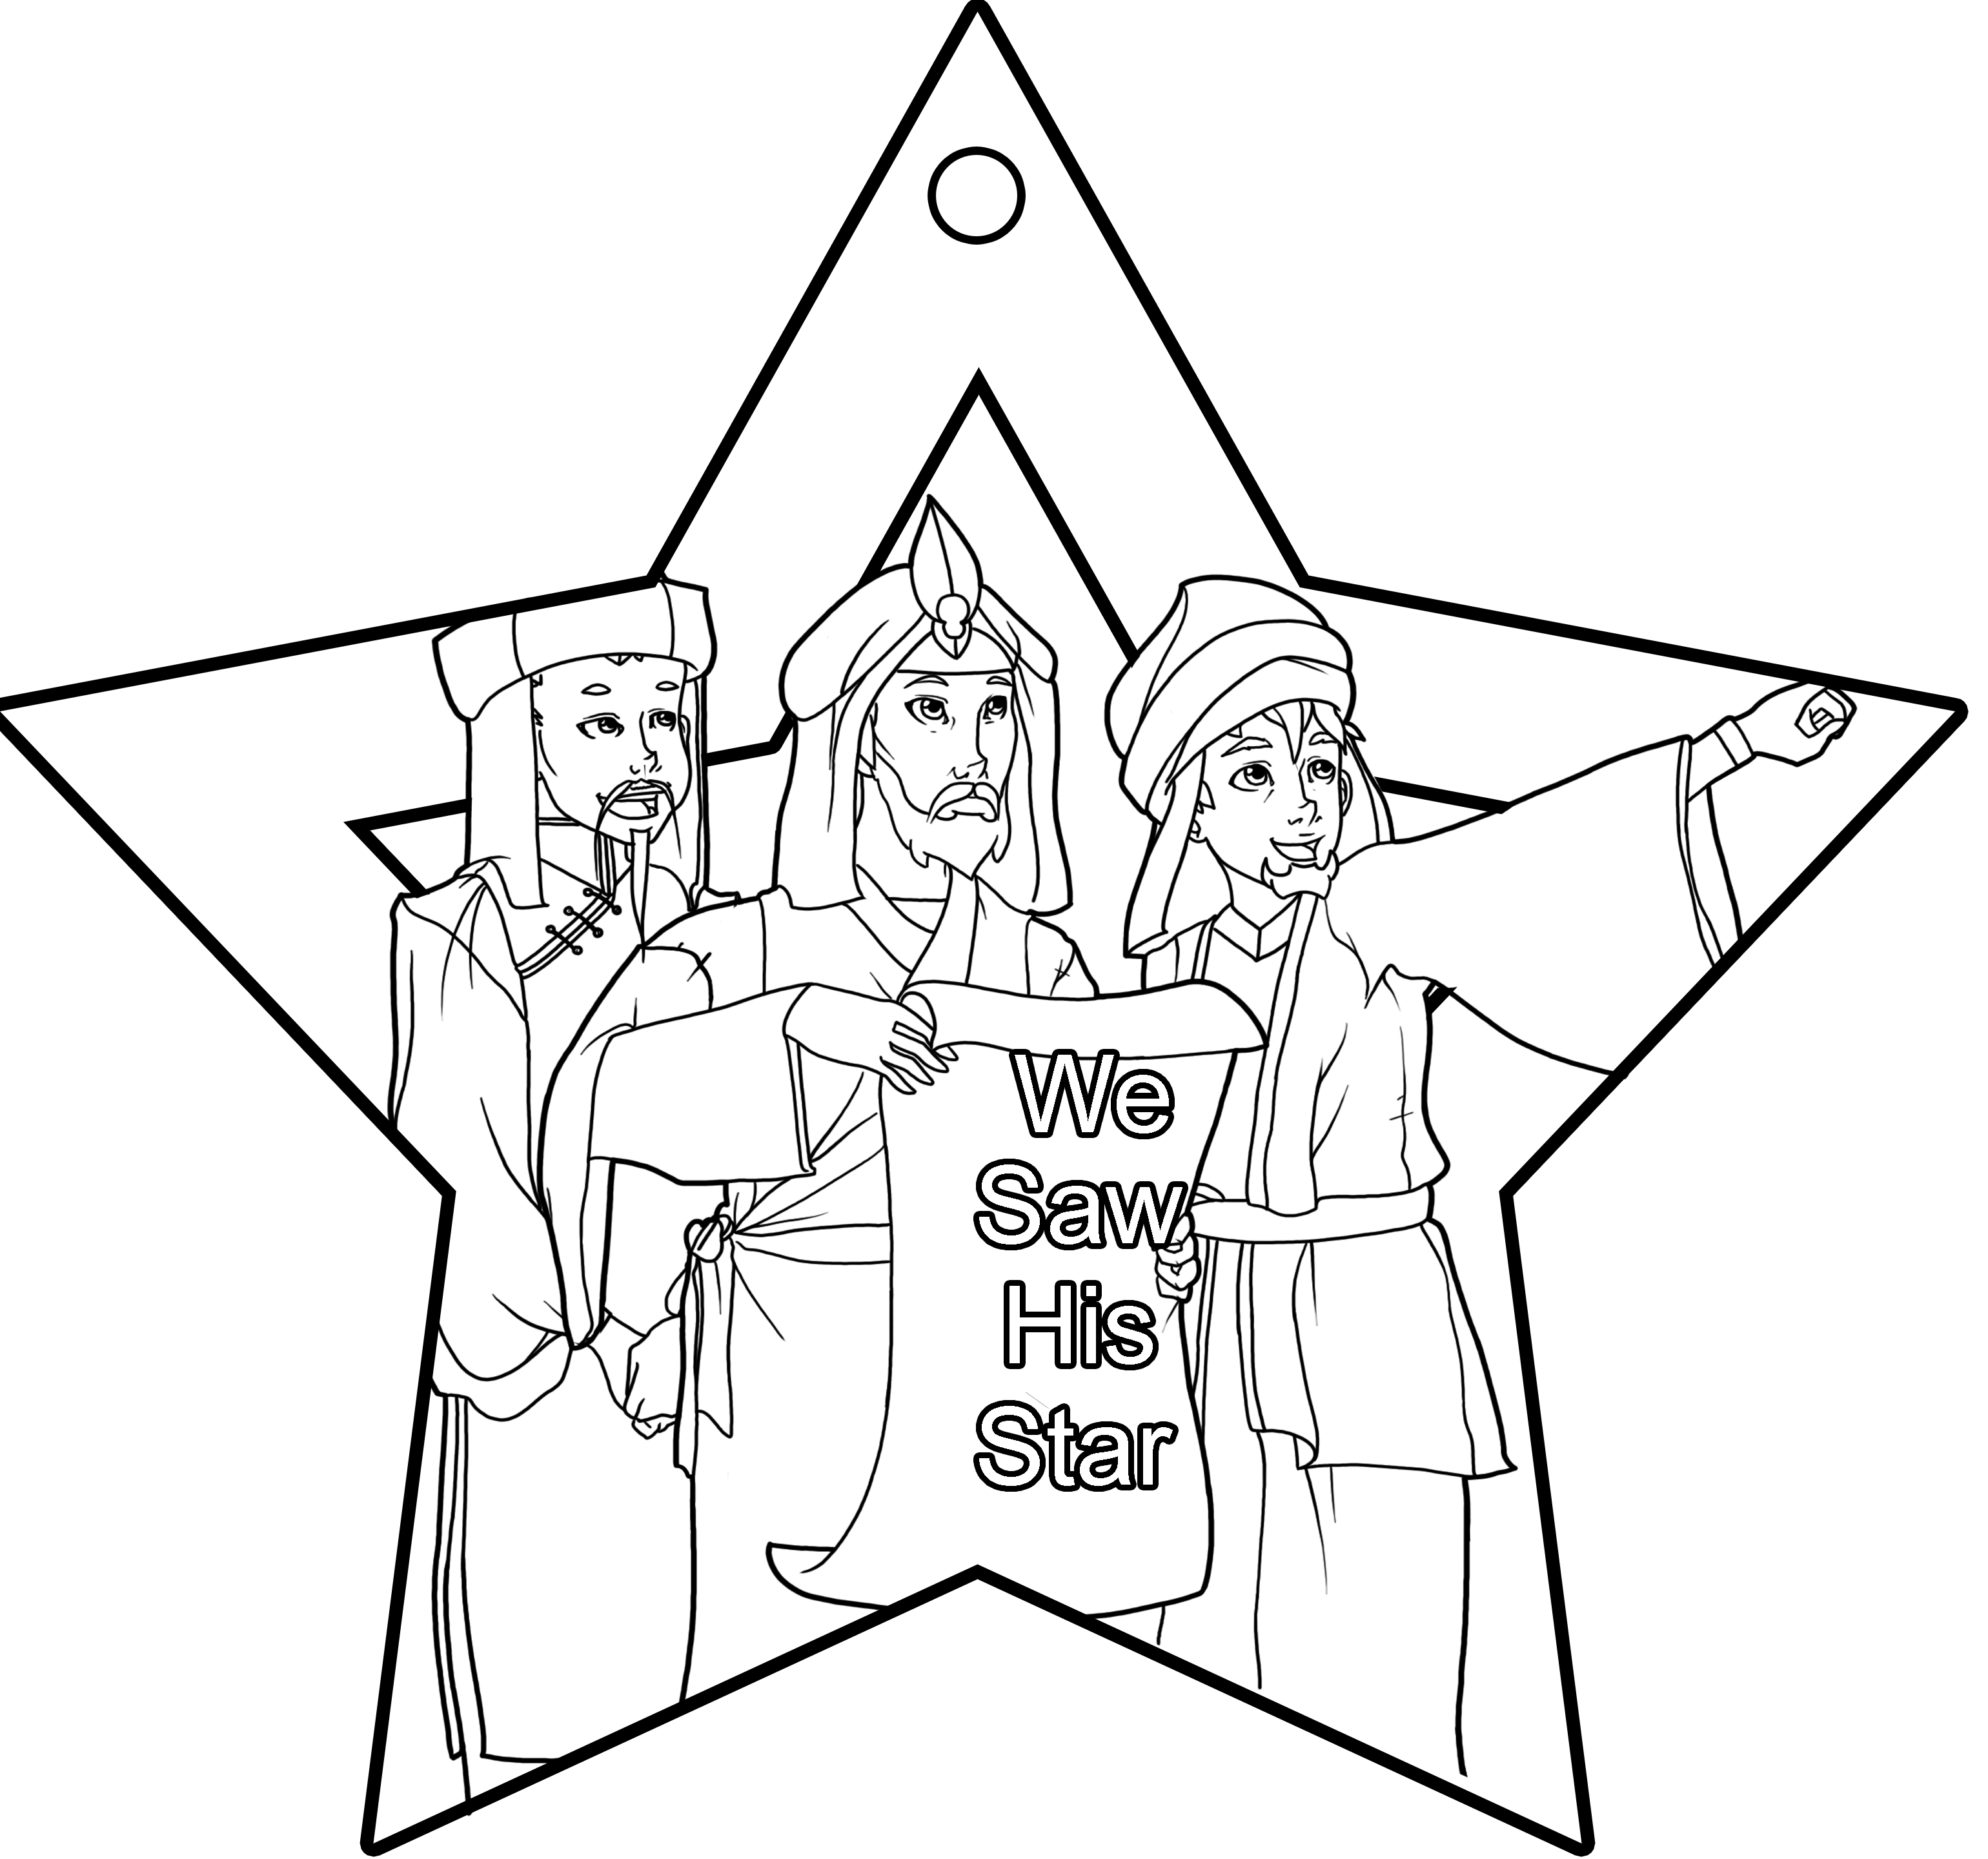 Coloring Page Wise Men Coloring Home Wise Coloring Pages